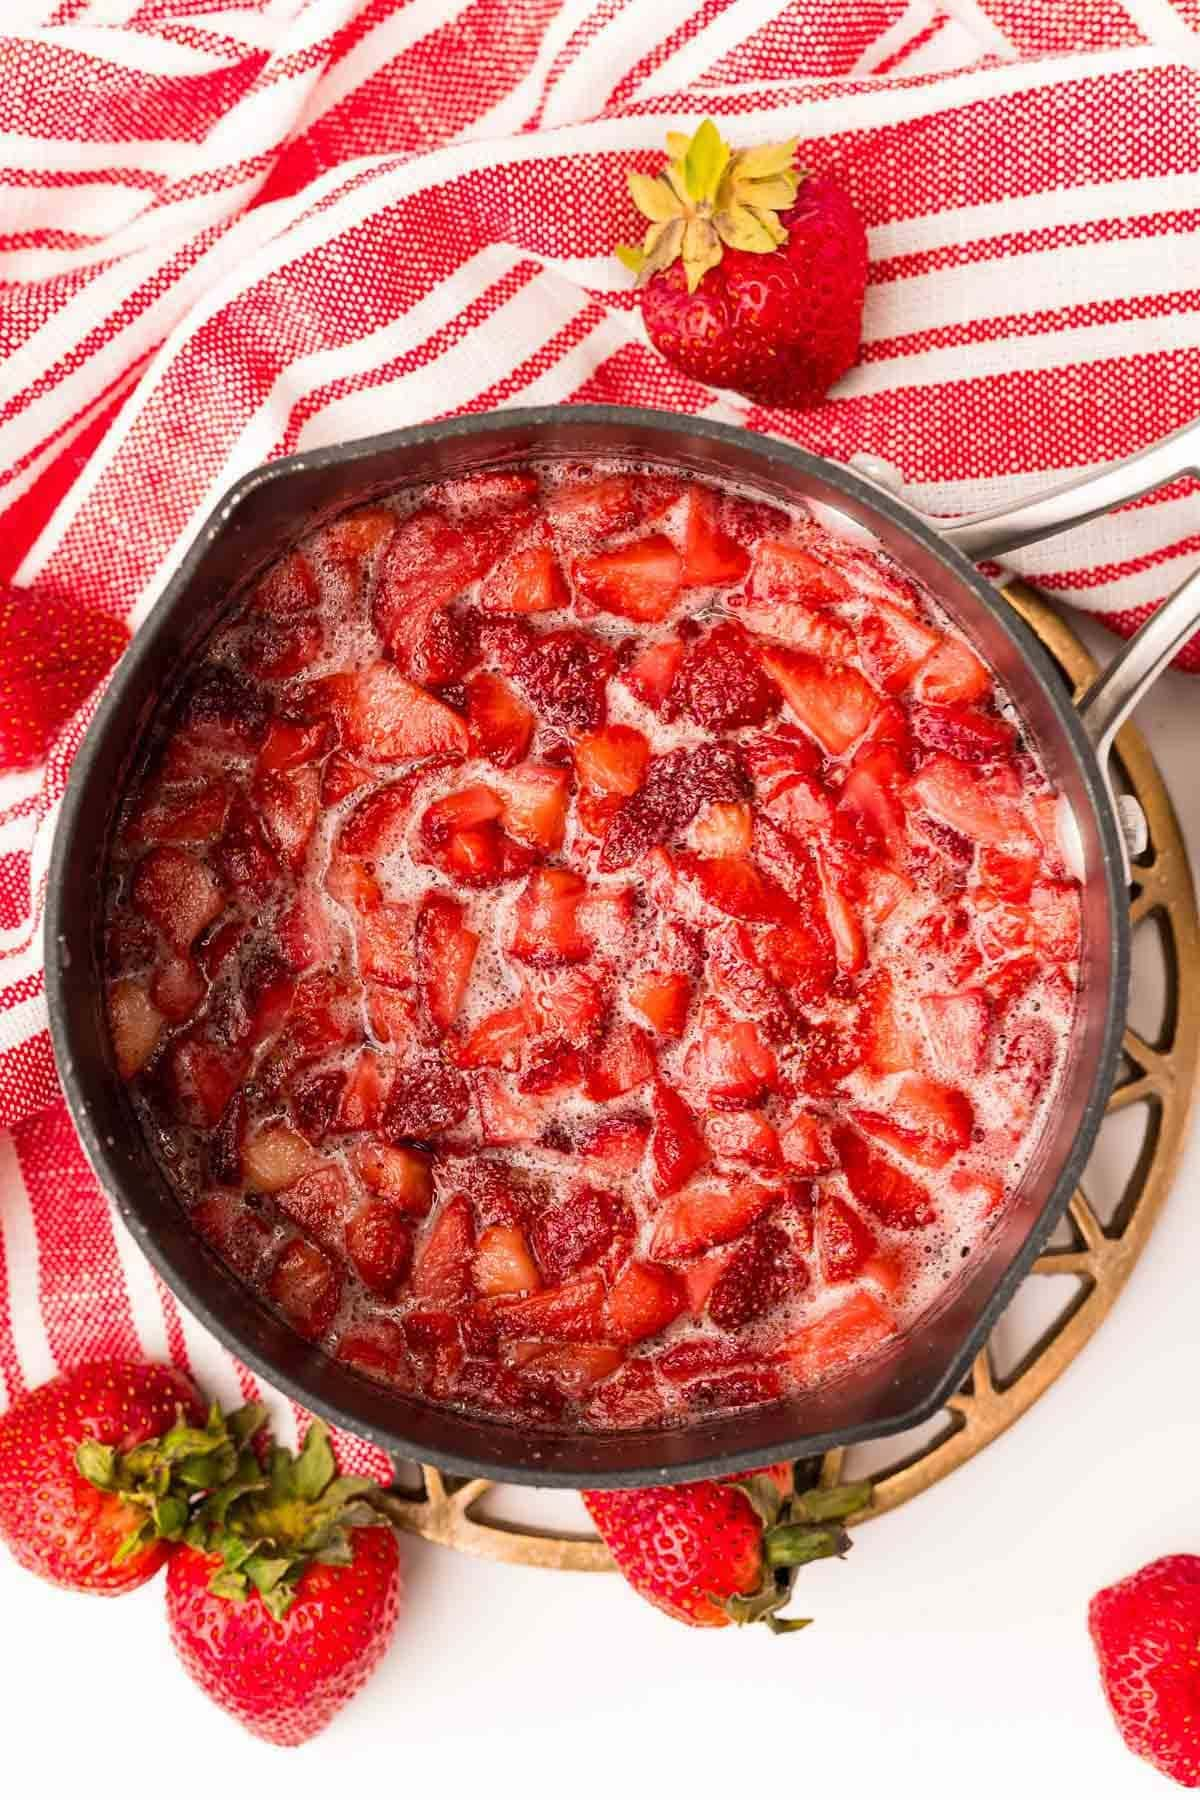 simmer strawberry, sugar, and water